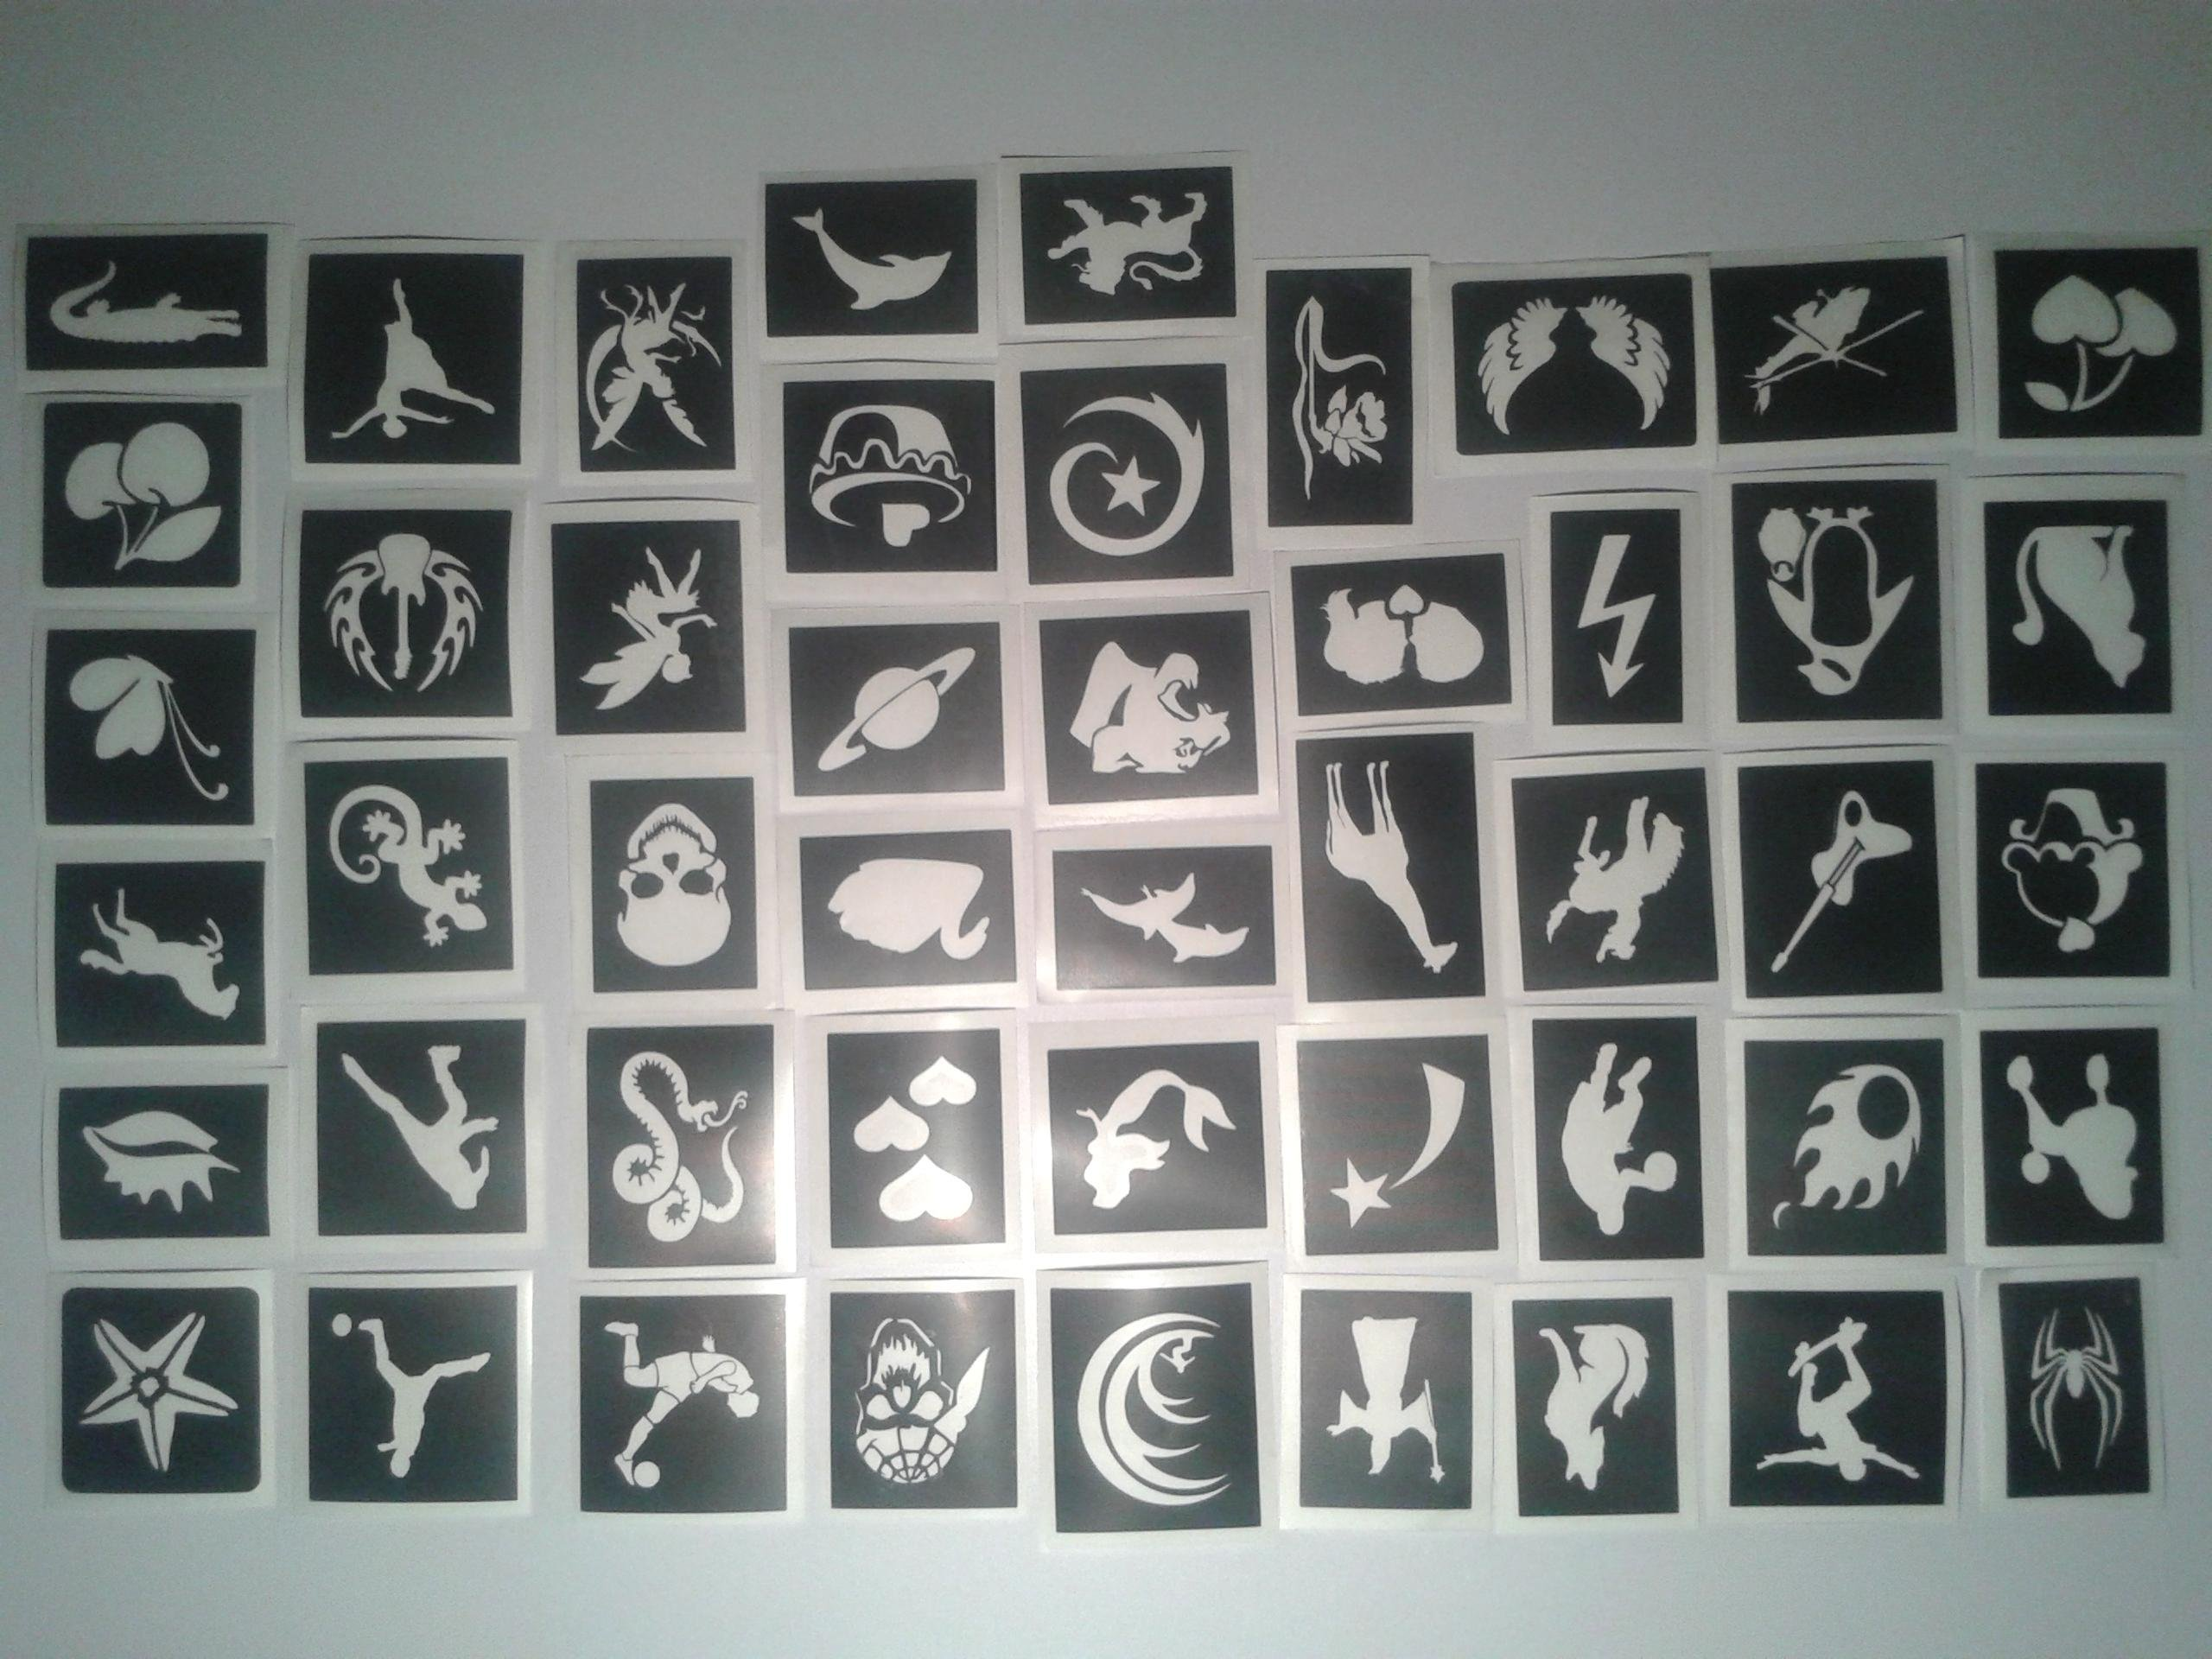 50 mini small tattoo stencils for glitter tattoos / airbrush tattoos / cakes / henna / many other uses girls & boys by Dazzle Glitter Tattoos (Image #1)